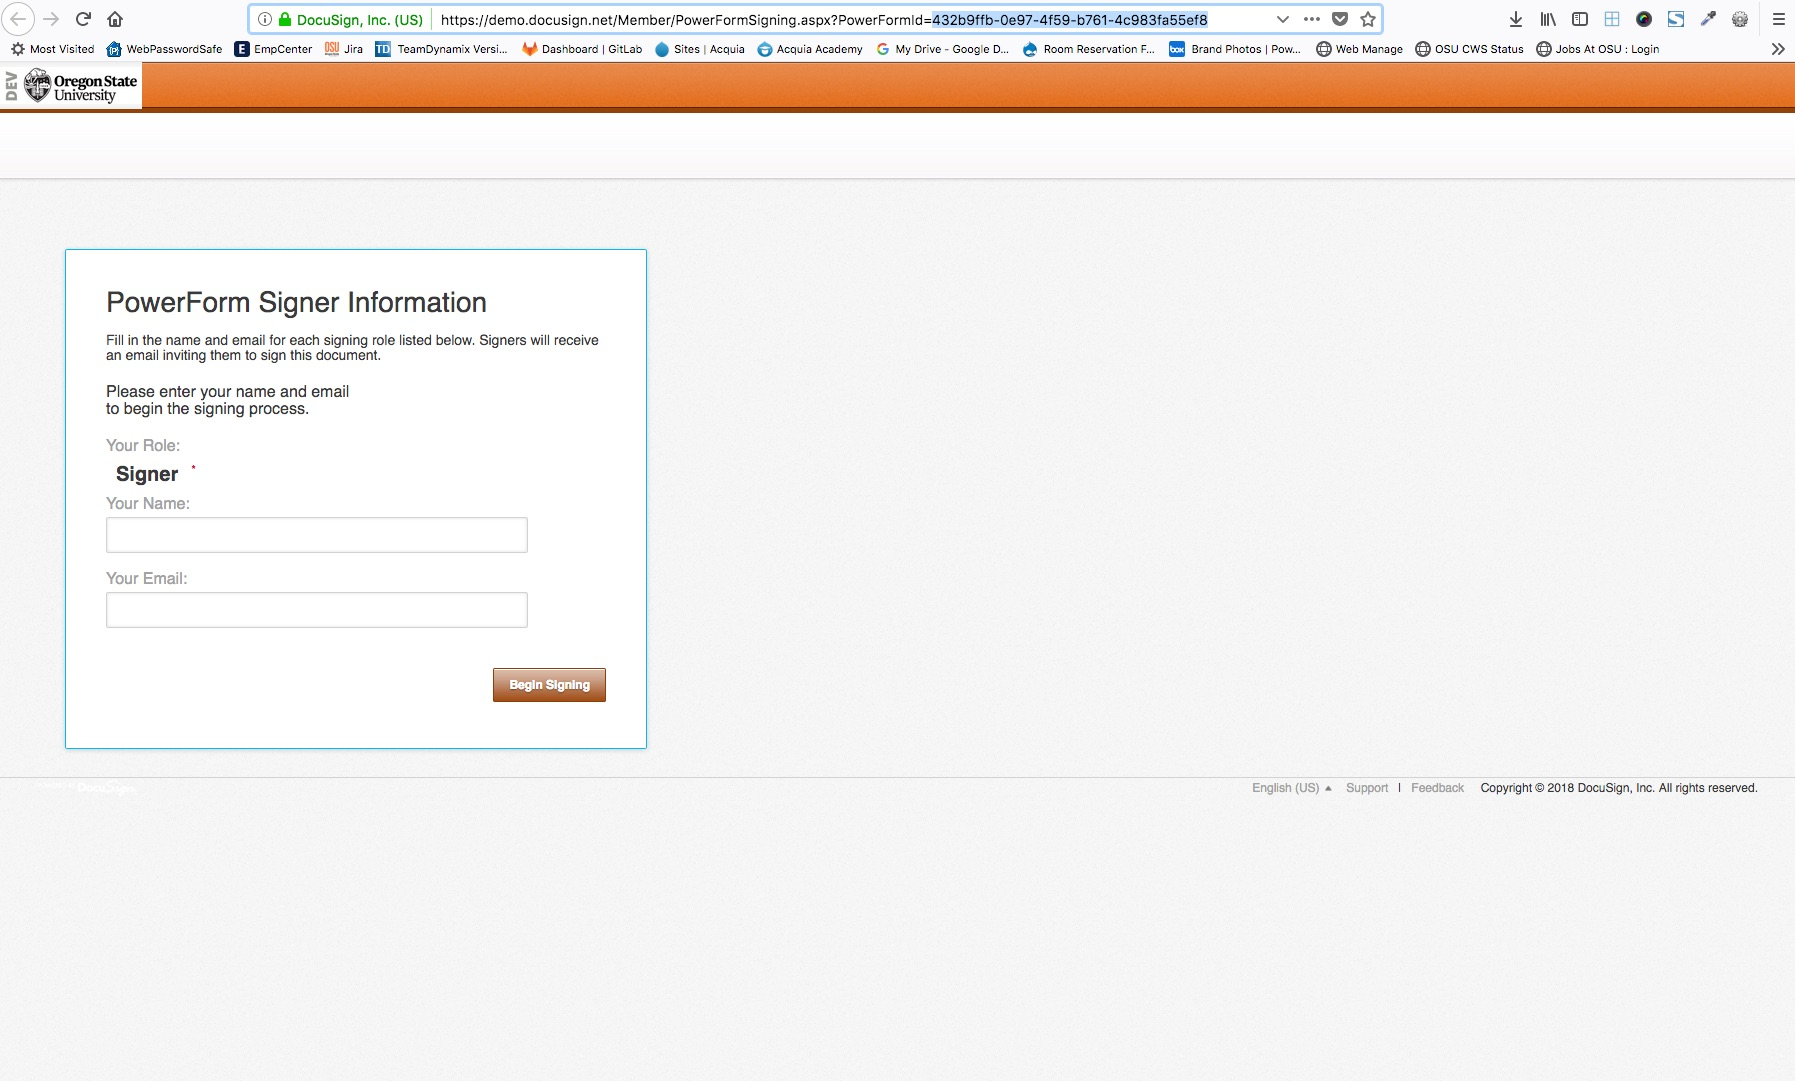 Integrate with DocuSign s PowerForm OSU Drupal 7